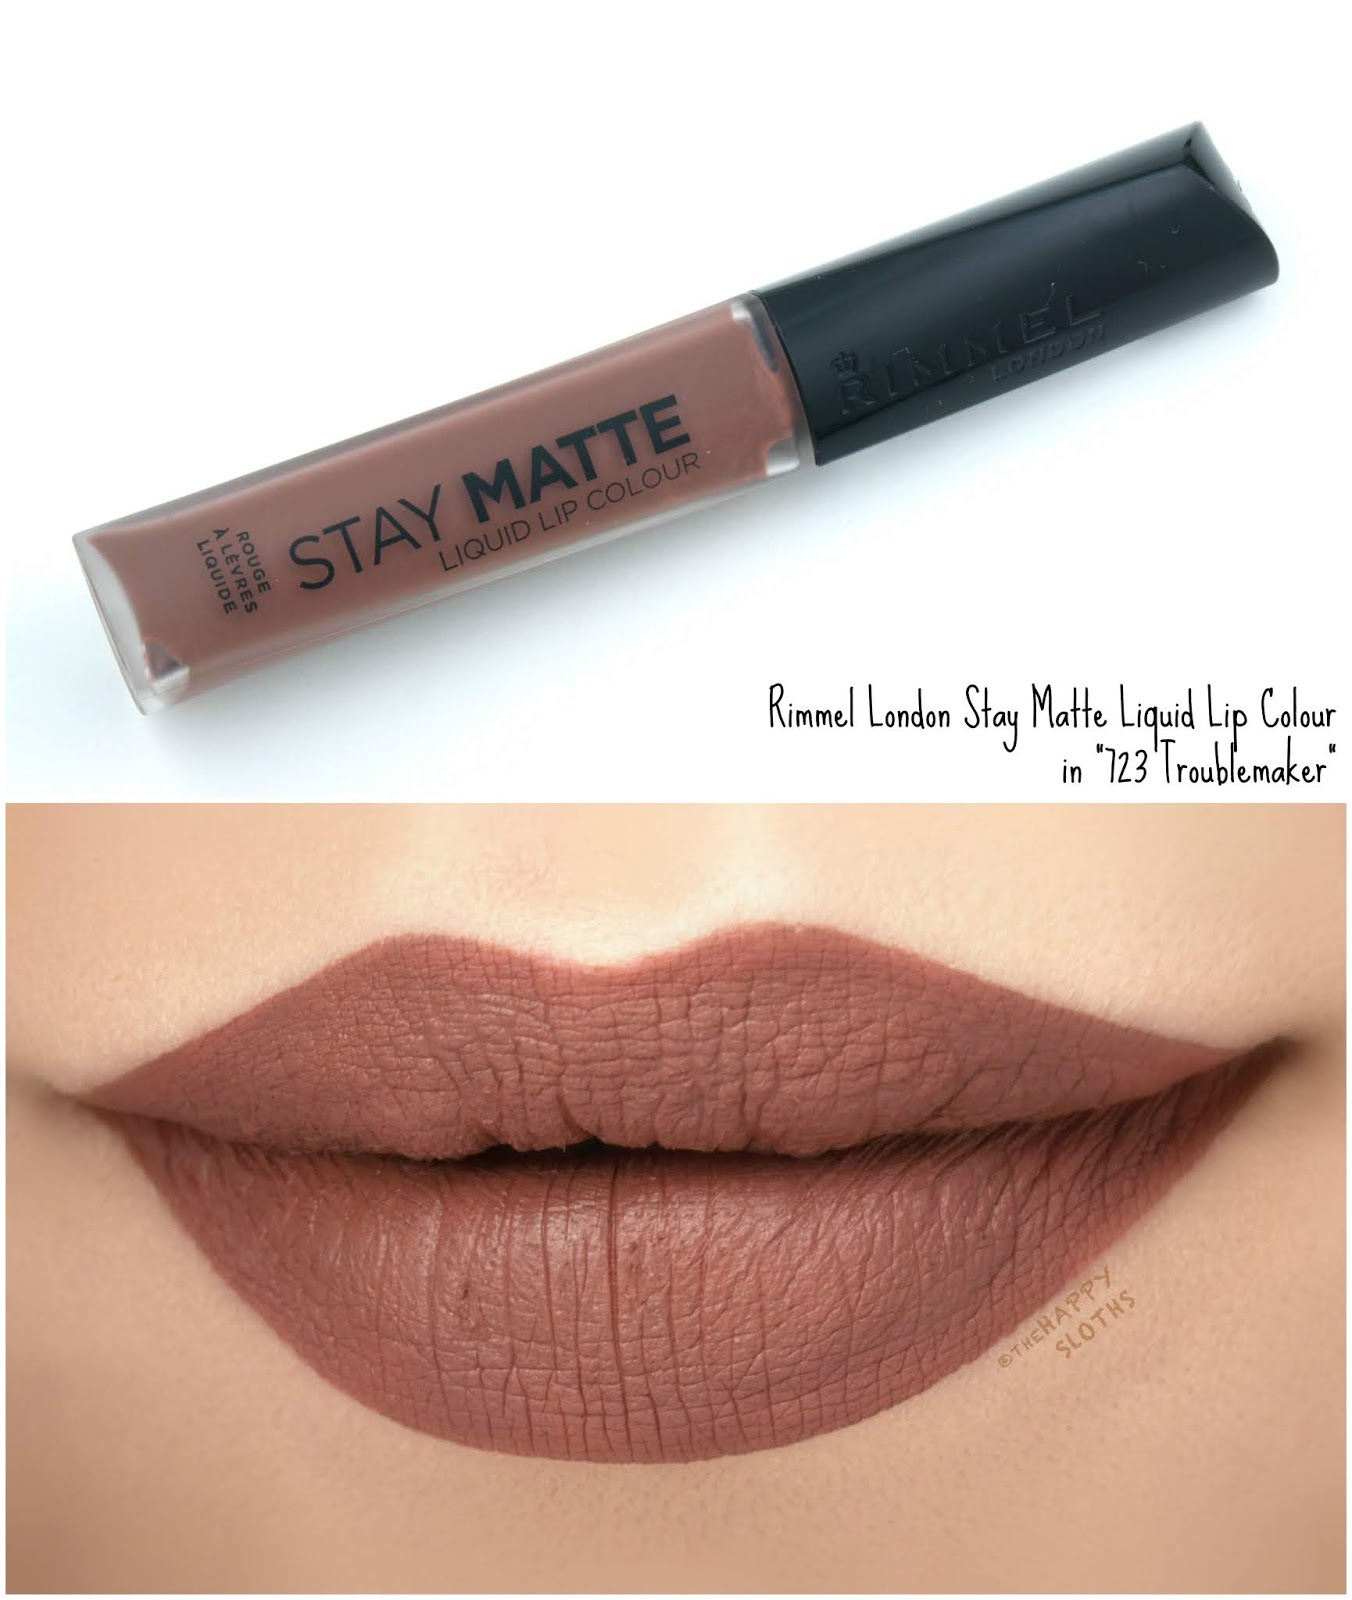 "Rimmel London | Stay Matte Liquid Lip Colour in ""723 Troublemaker"": Review and Swatches"